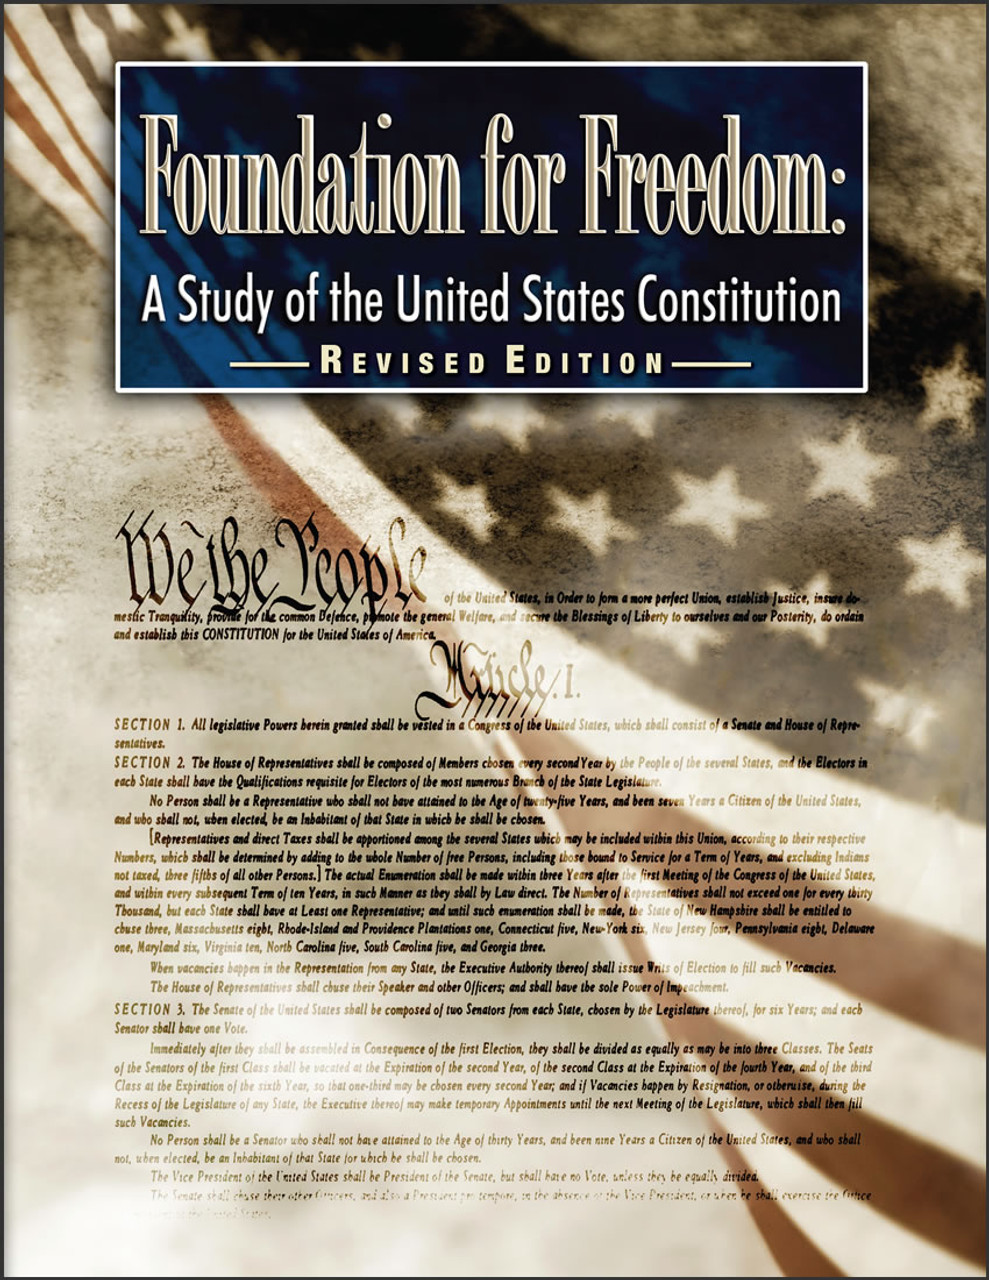 Foundation for Freedom: A Study of the United States Constitution, Revised edition